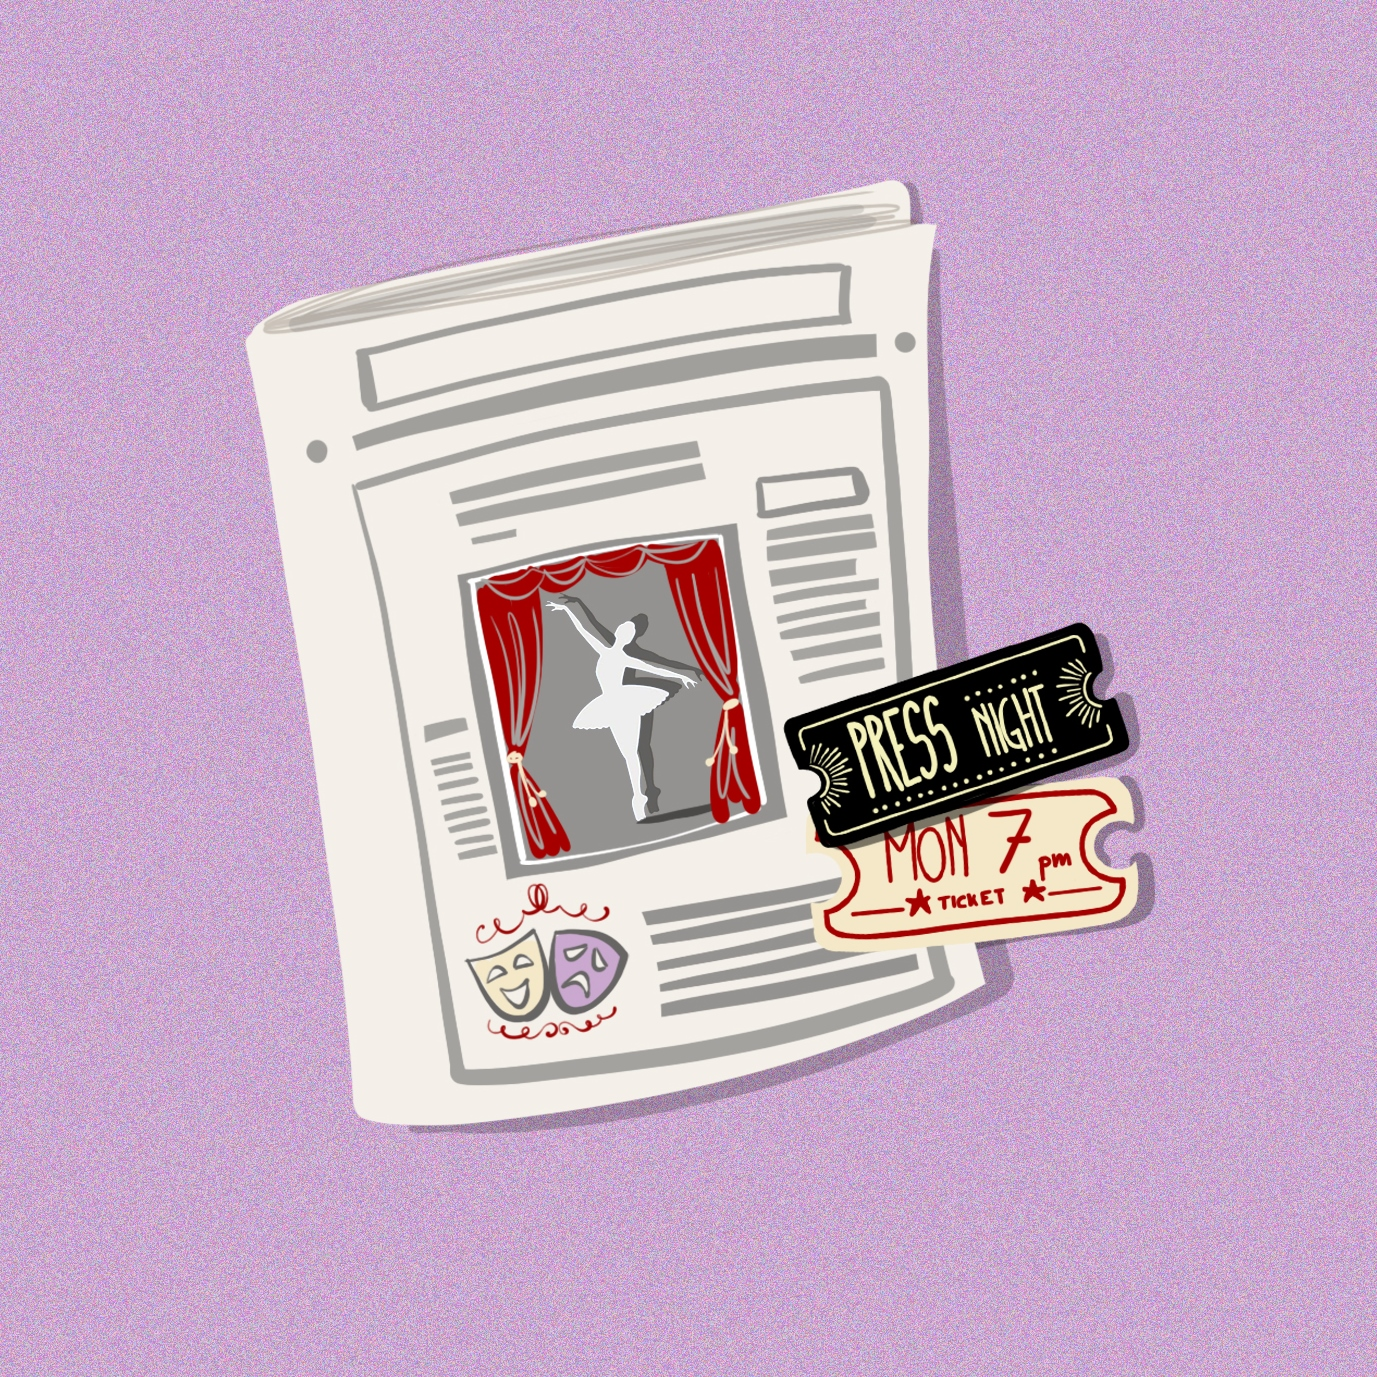 Illustration of a newspaper and press tickets, on a purple background. The front page of the newspaper features a silhouette of a ballerina dancing on a stage and the theatre masks symbol. Illustration by Gaia Leandri.